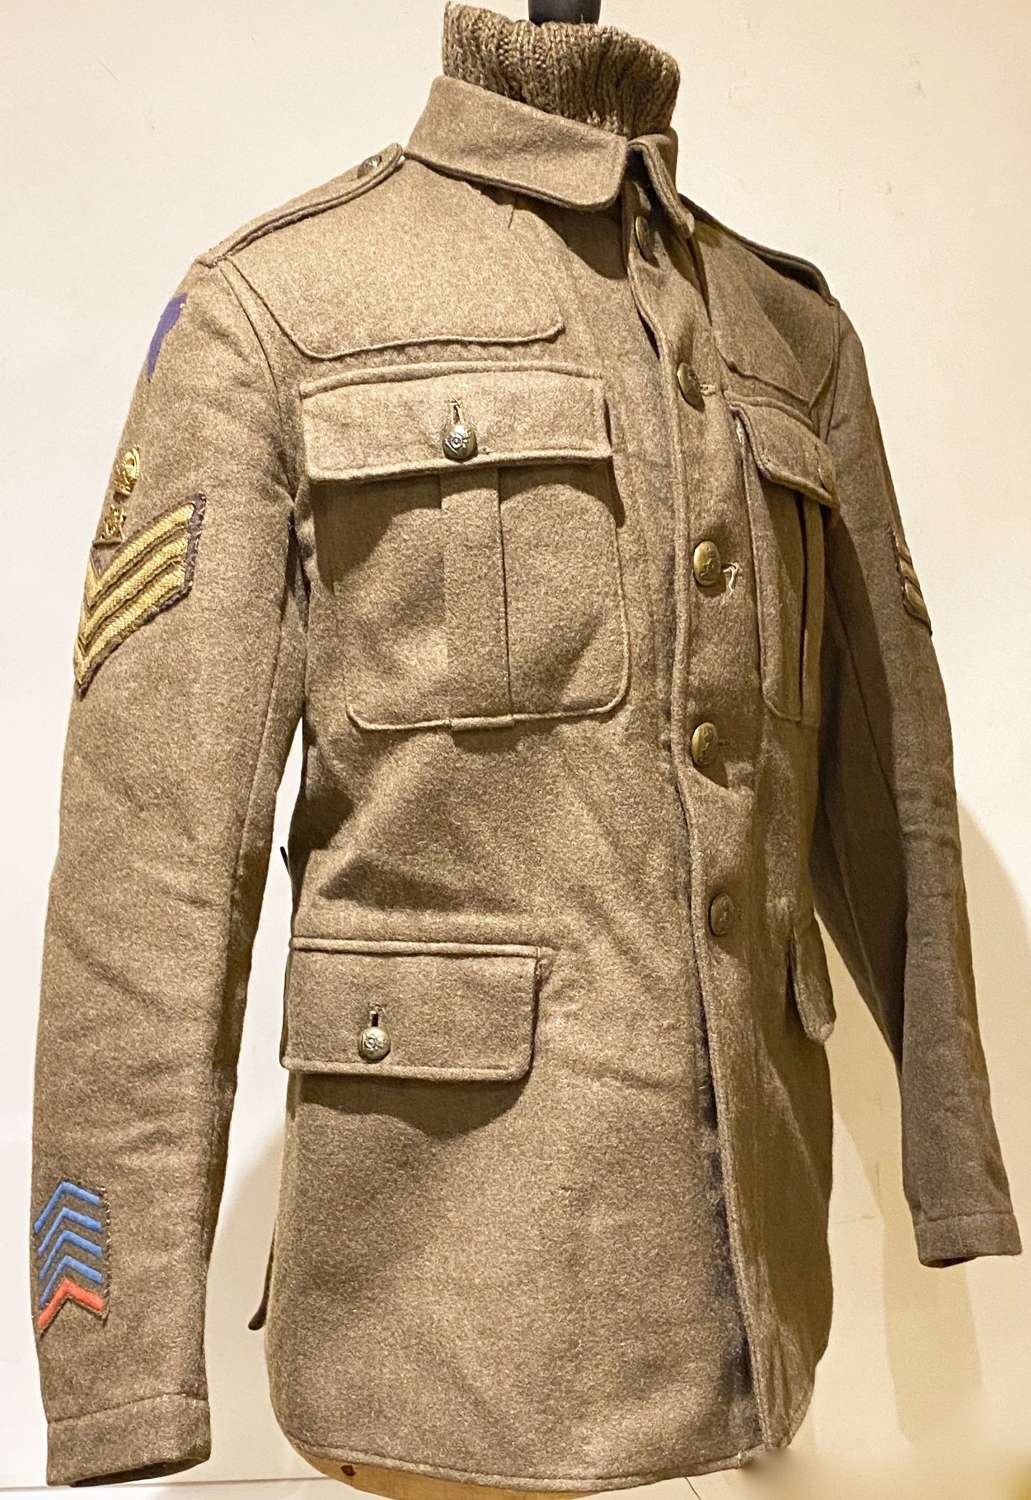 WW1 Royal Artillery 4th Division Badged Other Ranks 1902 Pattern Tunic